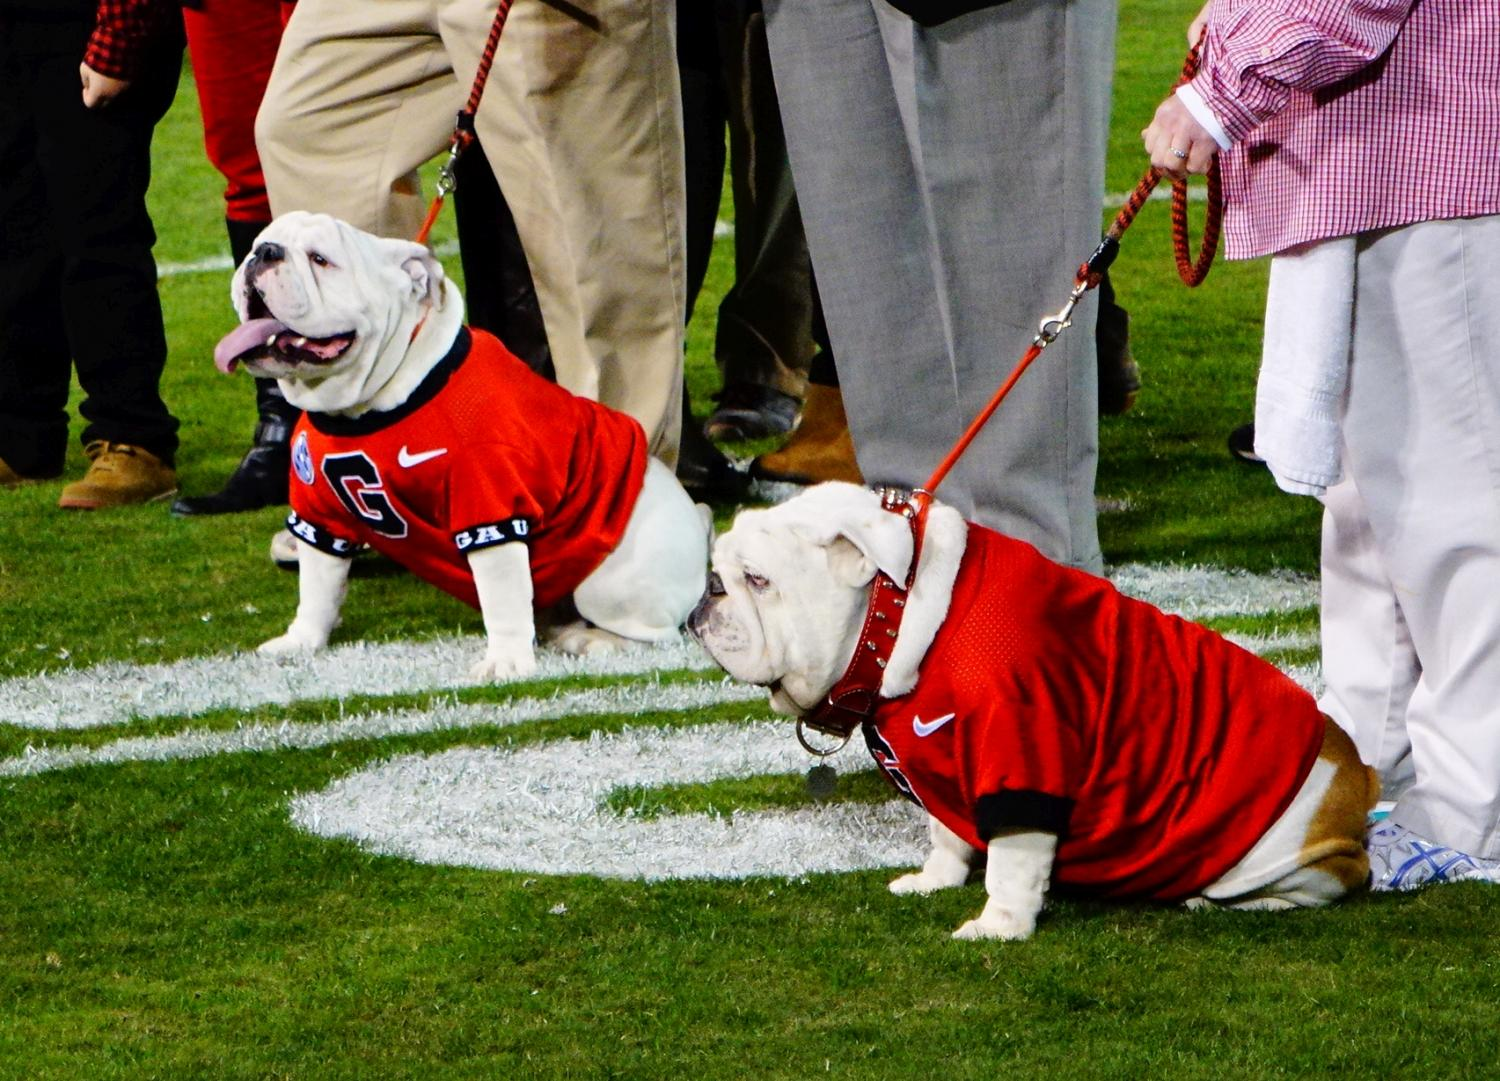 (Left) Que - Uga X, (Right) Russ - Uga IX